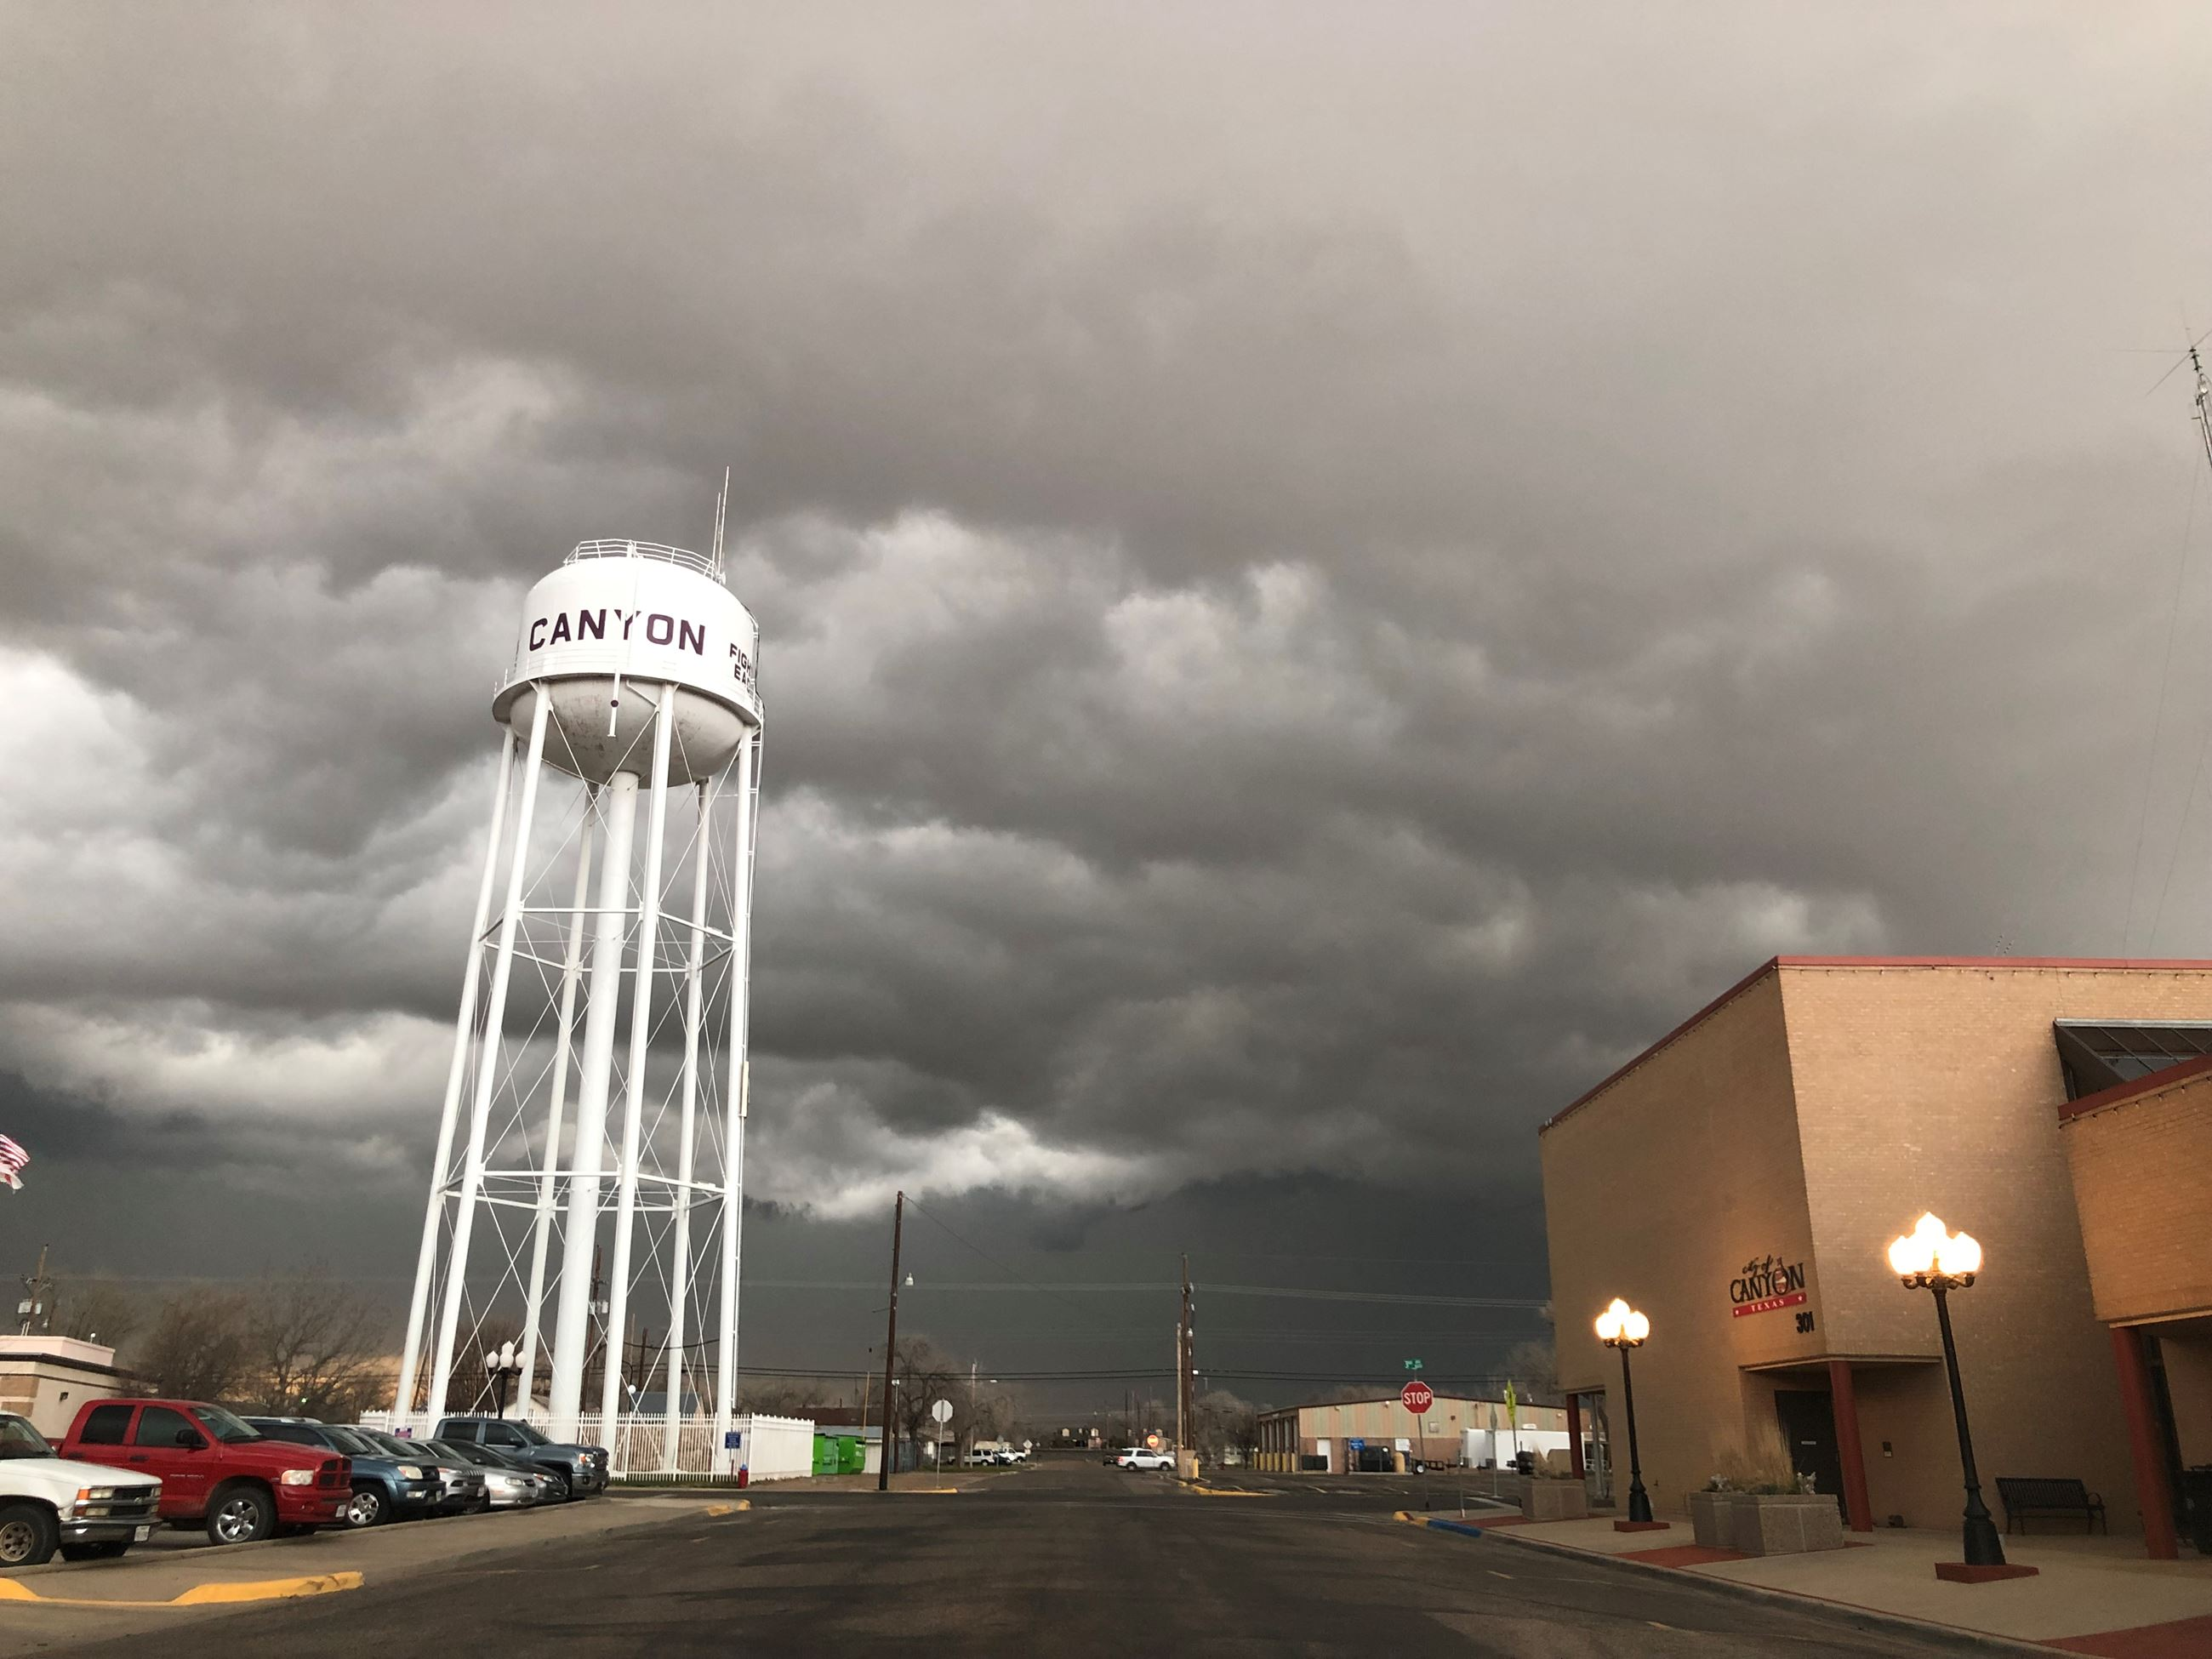 Stormy skies by downtown water tower 2019